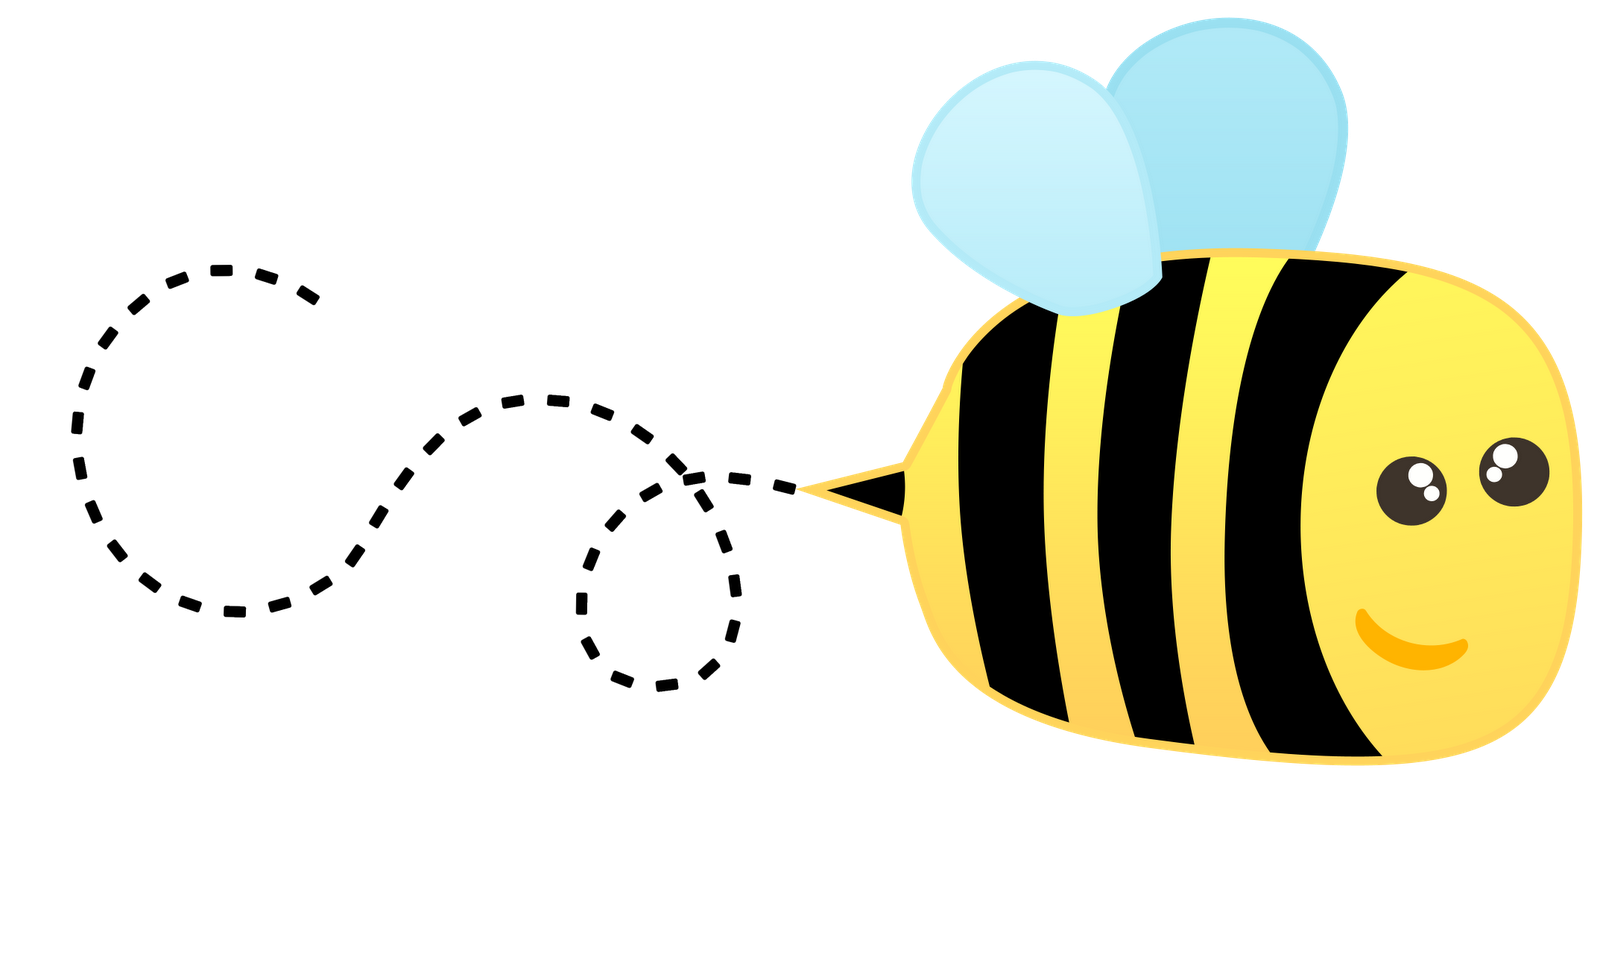 Spelling Bee Clipart Black And White | Clipart Panda - Free ...